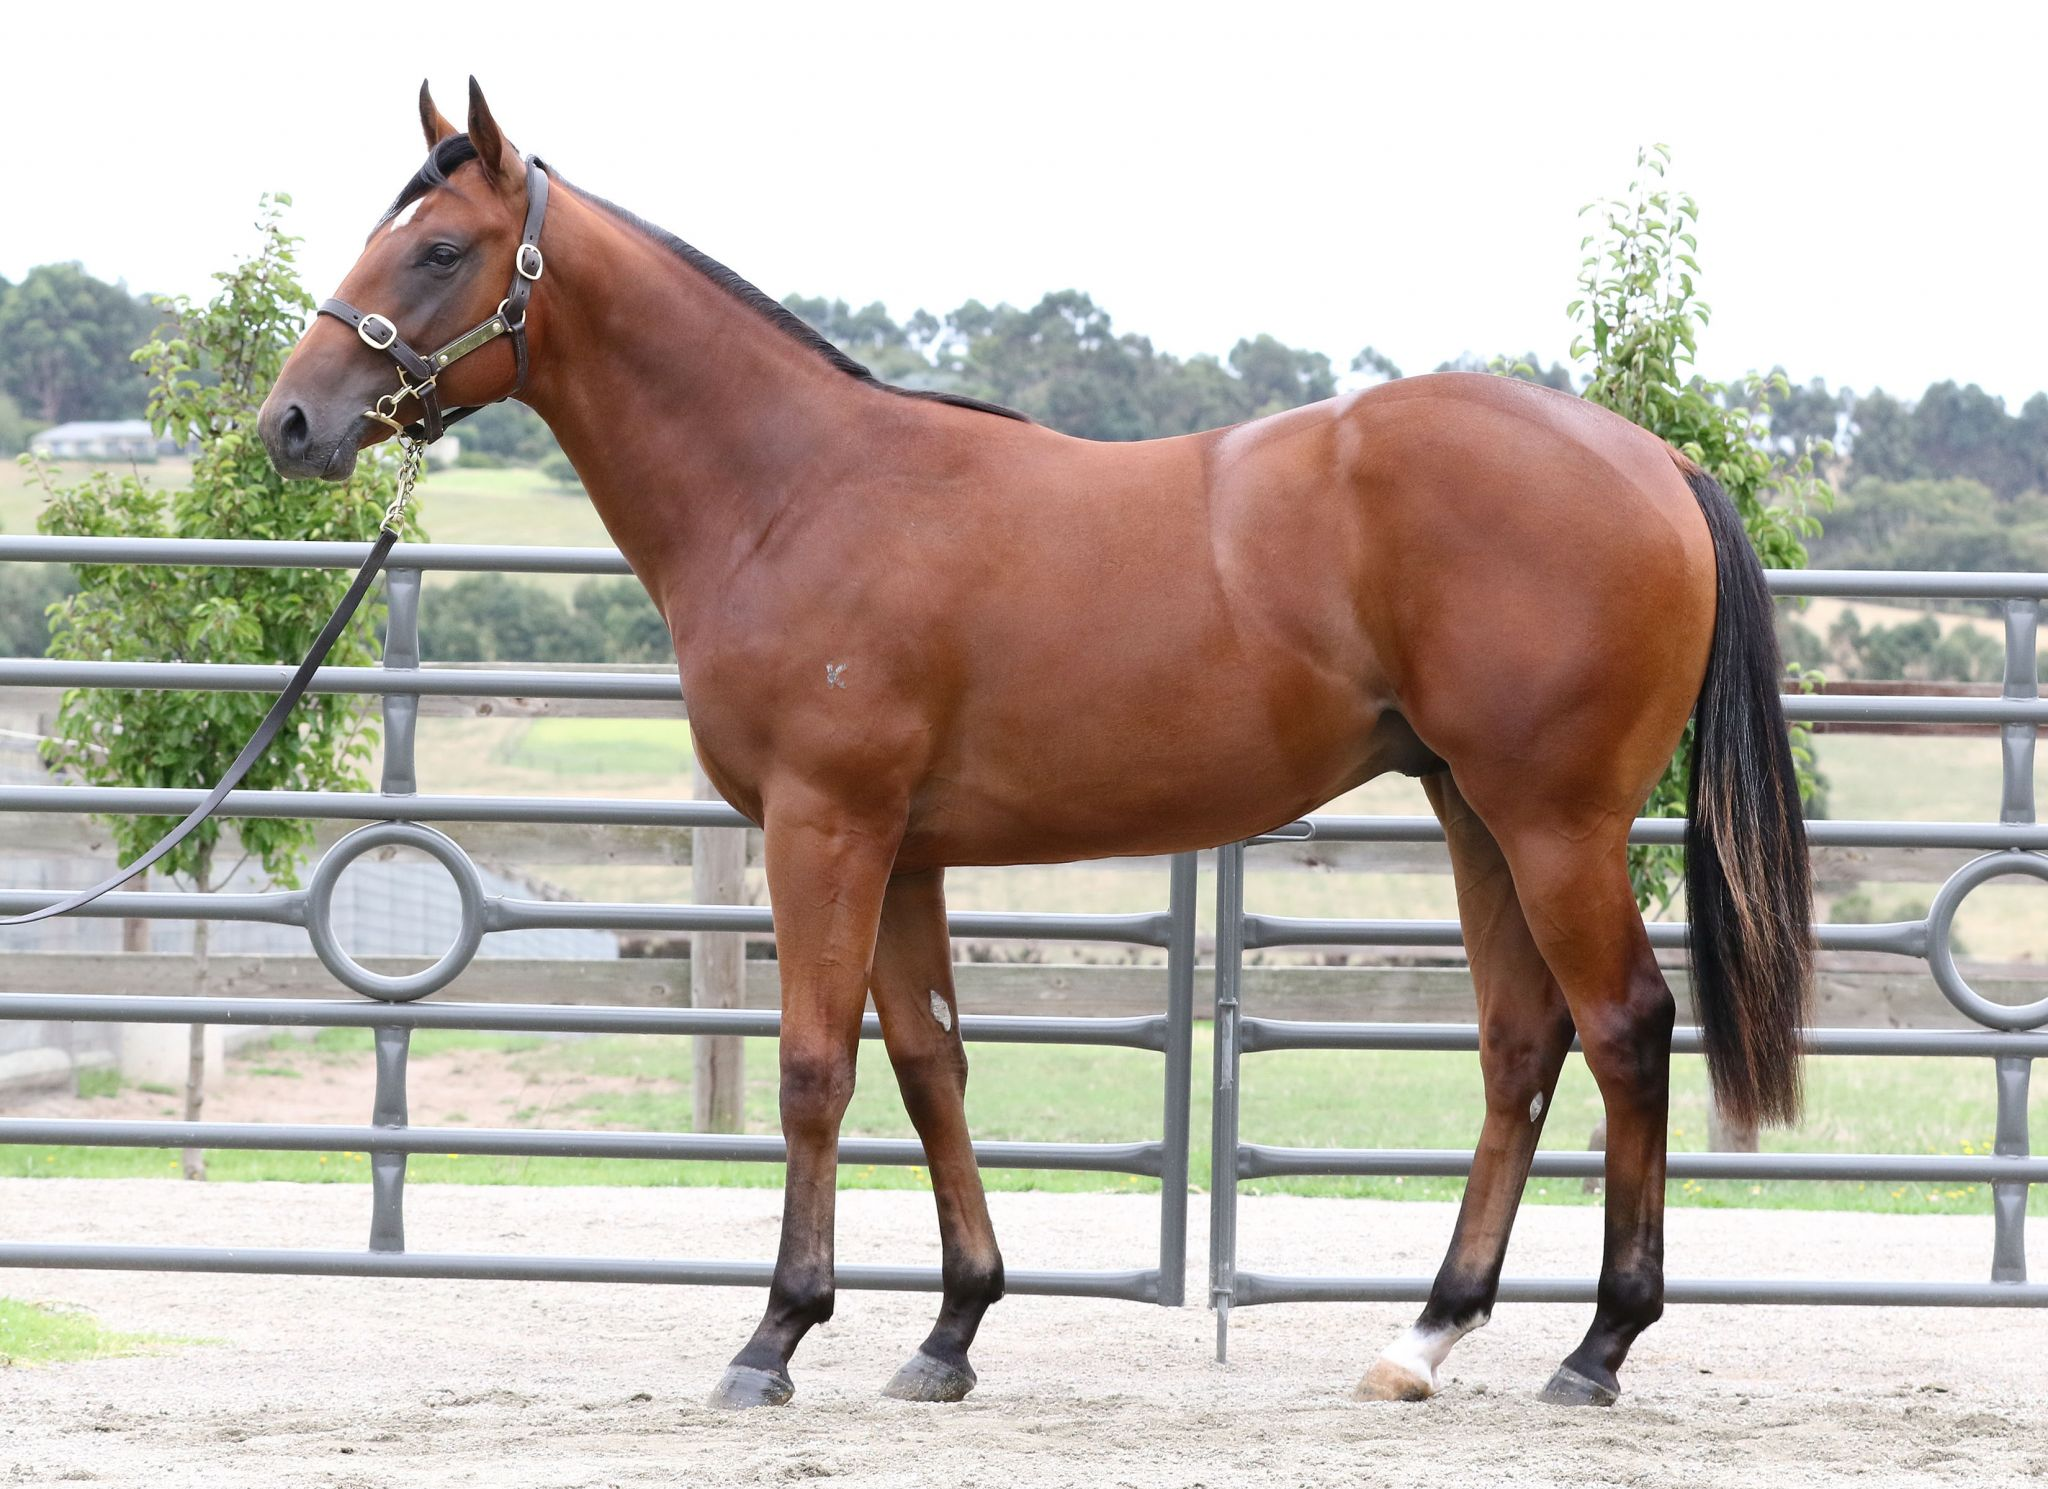 Serbelloni at 2017 Melbourne Premier Yearling Sale